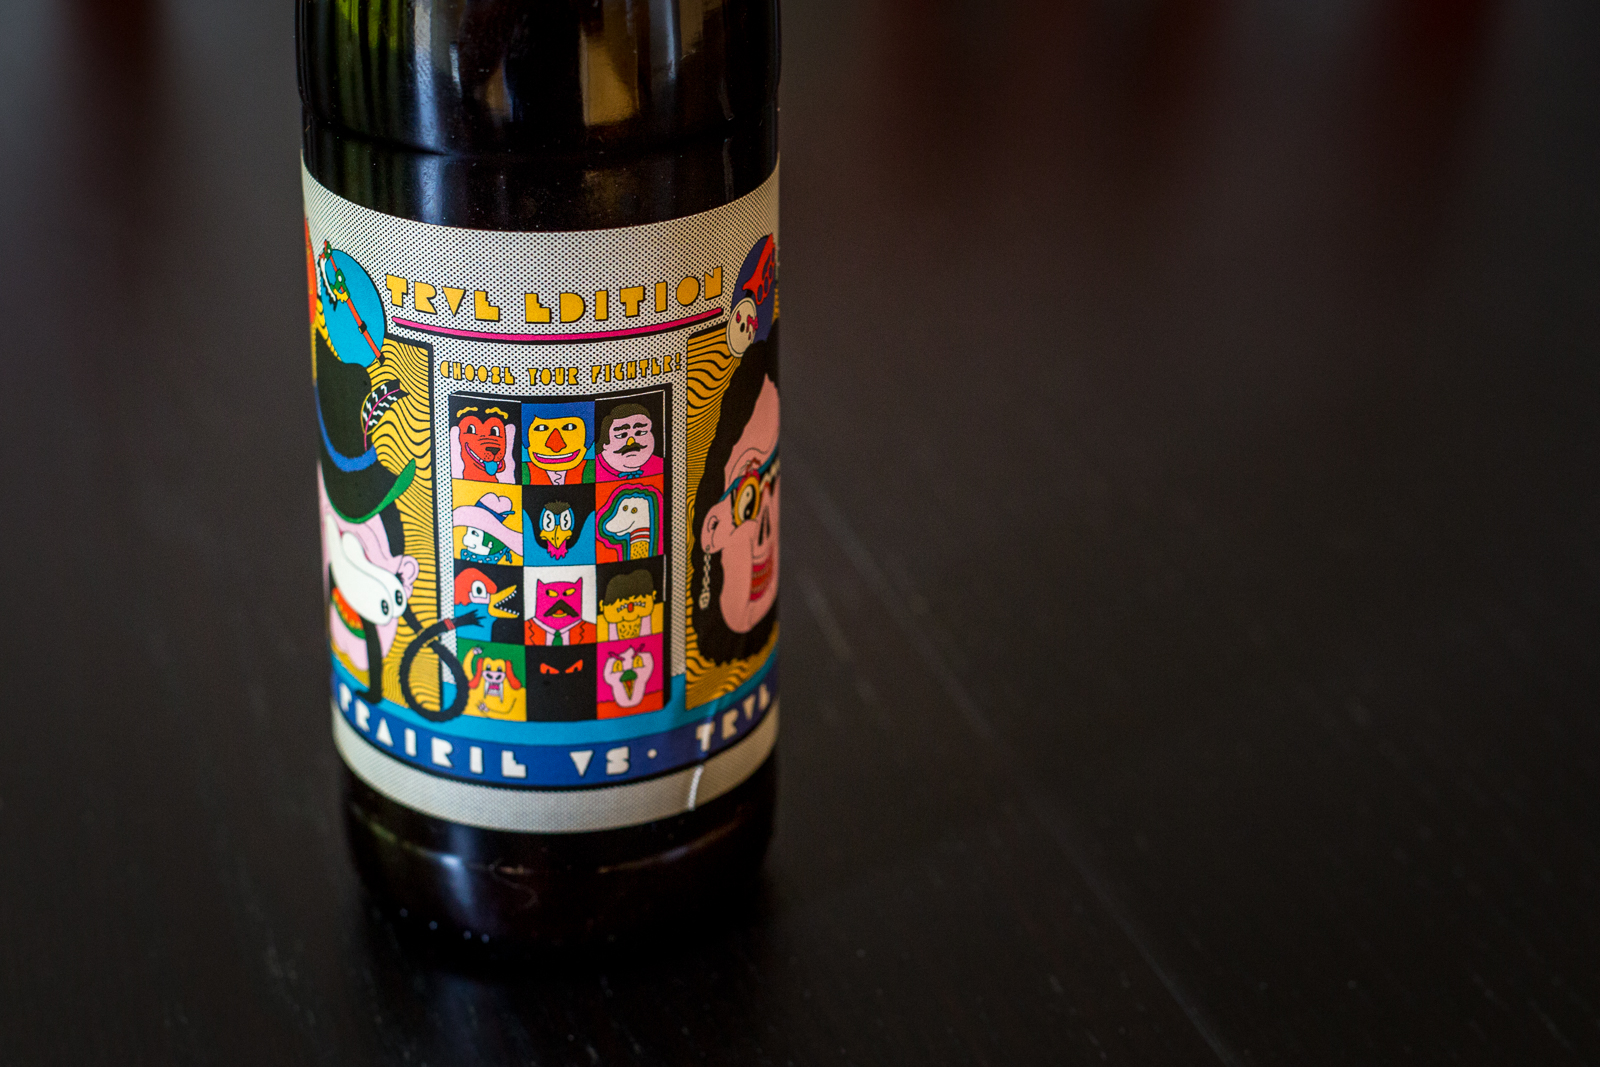 Prairie and Trve Collaboration Beer